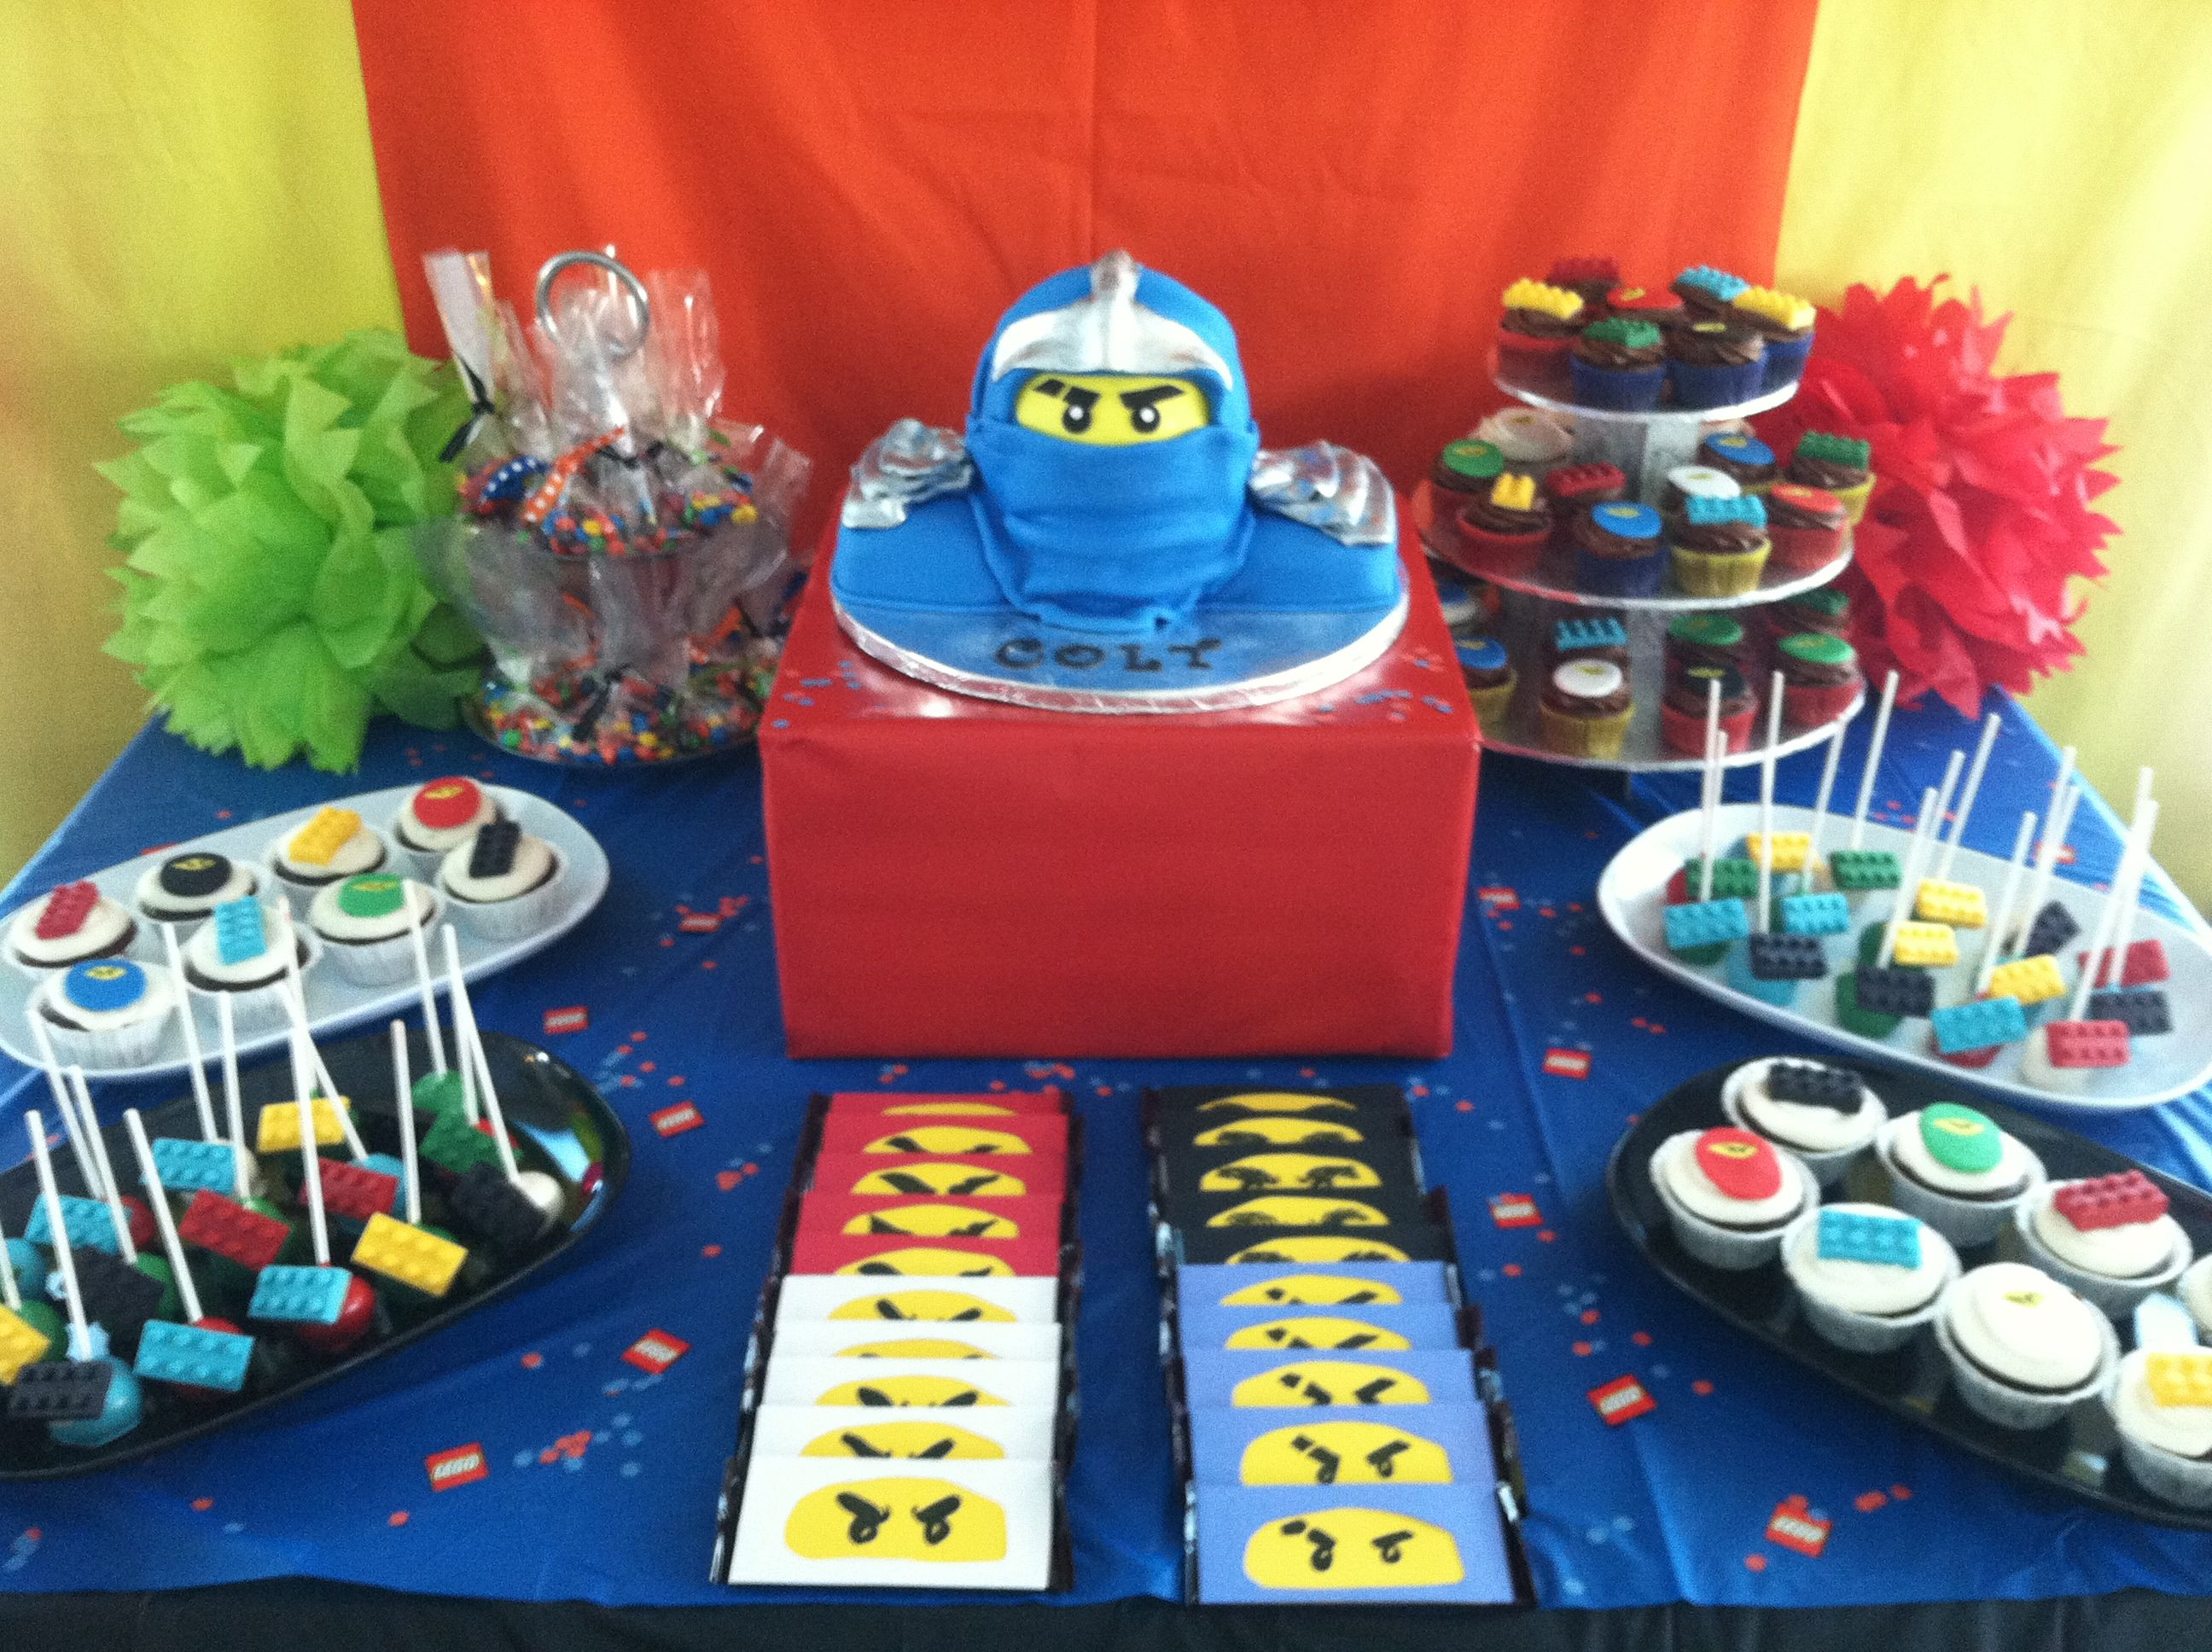 Lego Ninjago Party table. Ninjago birthday, Lego ninjago